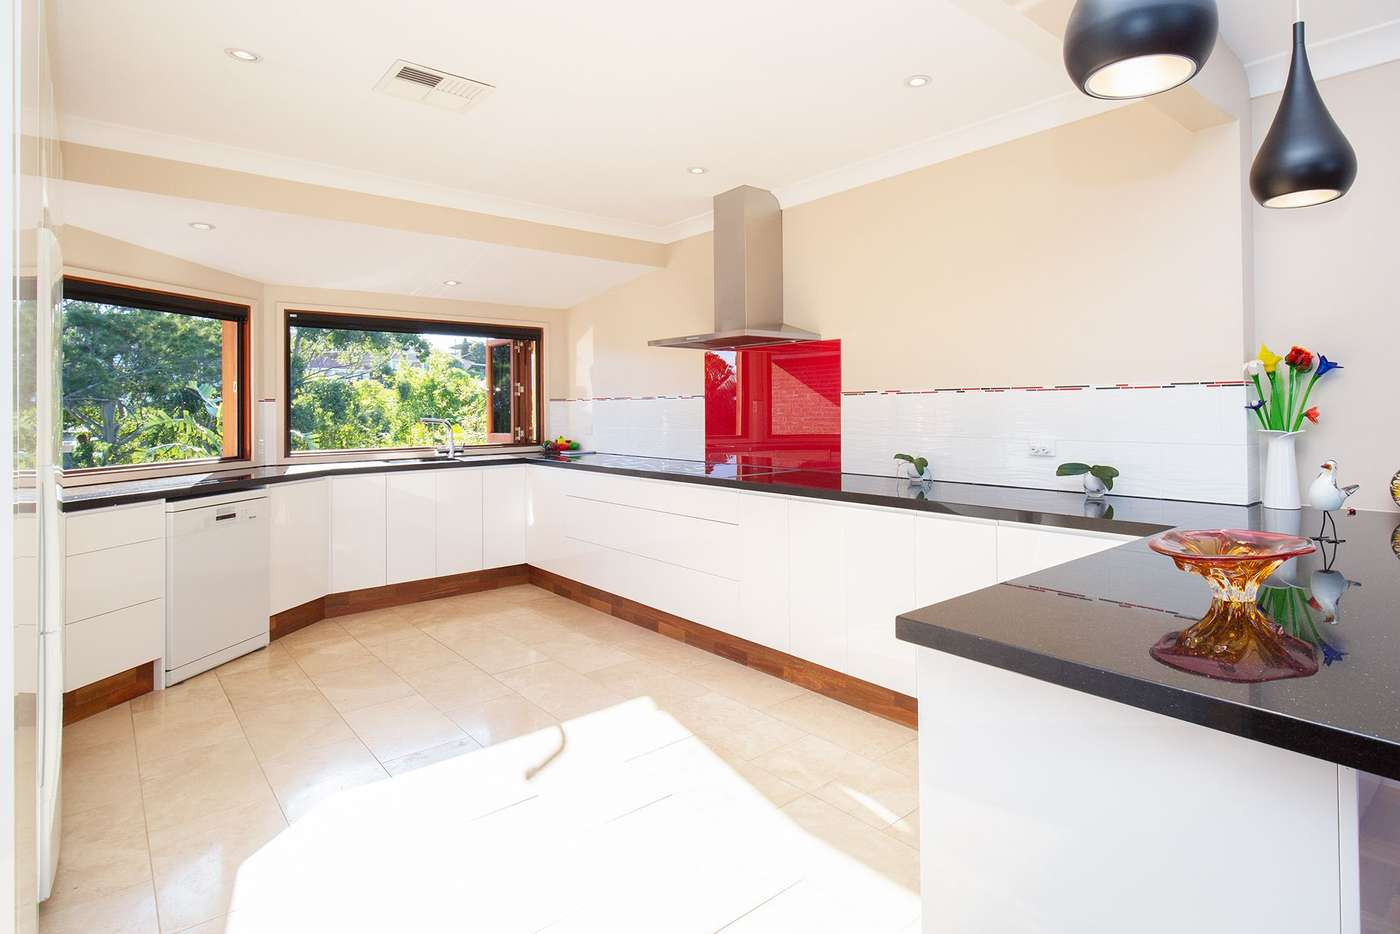 Fifth view of Homely house listing, 79 Ross Street, Belmont NSW 2280